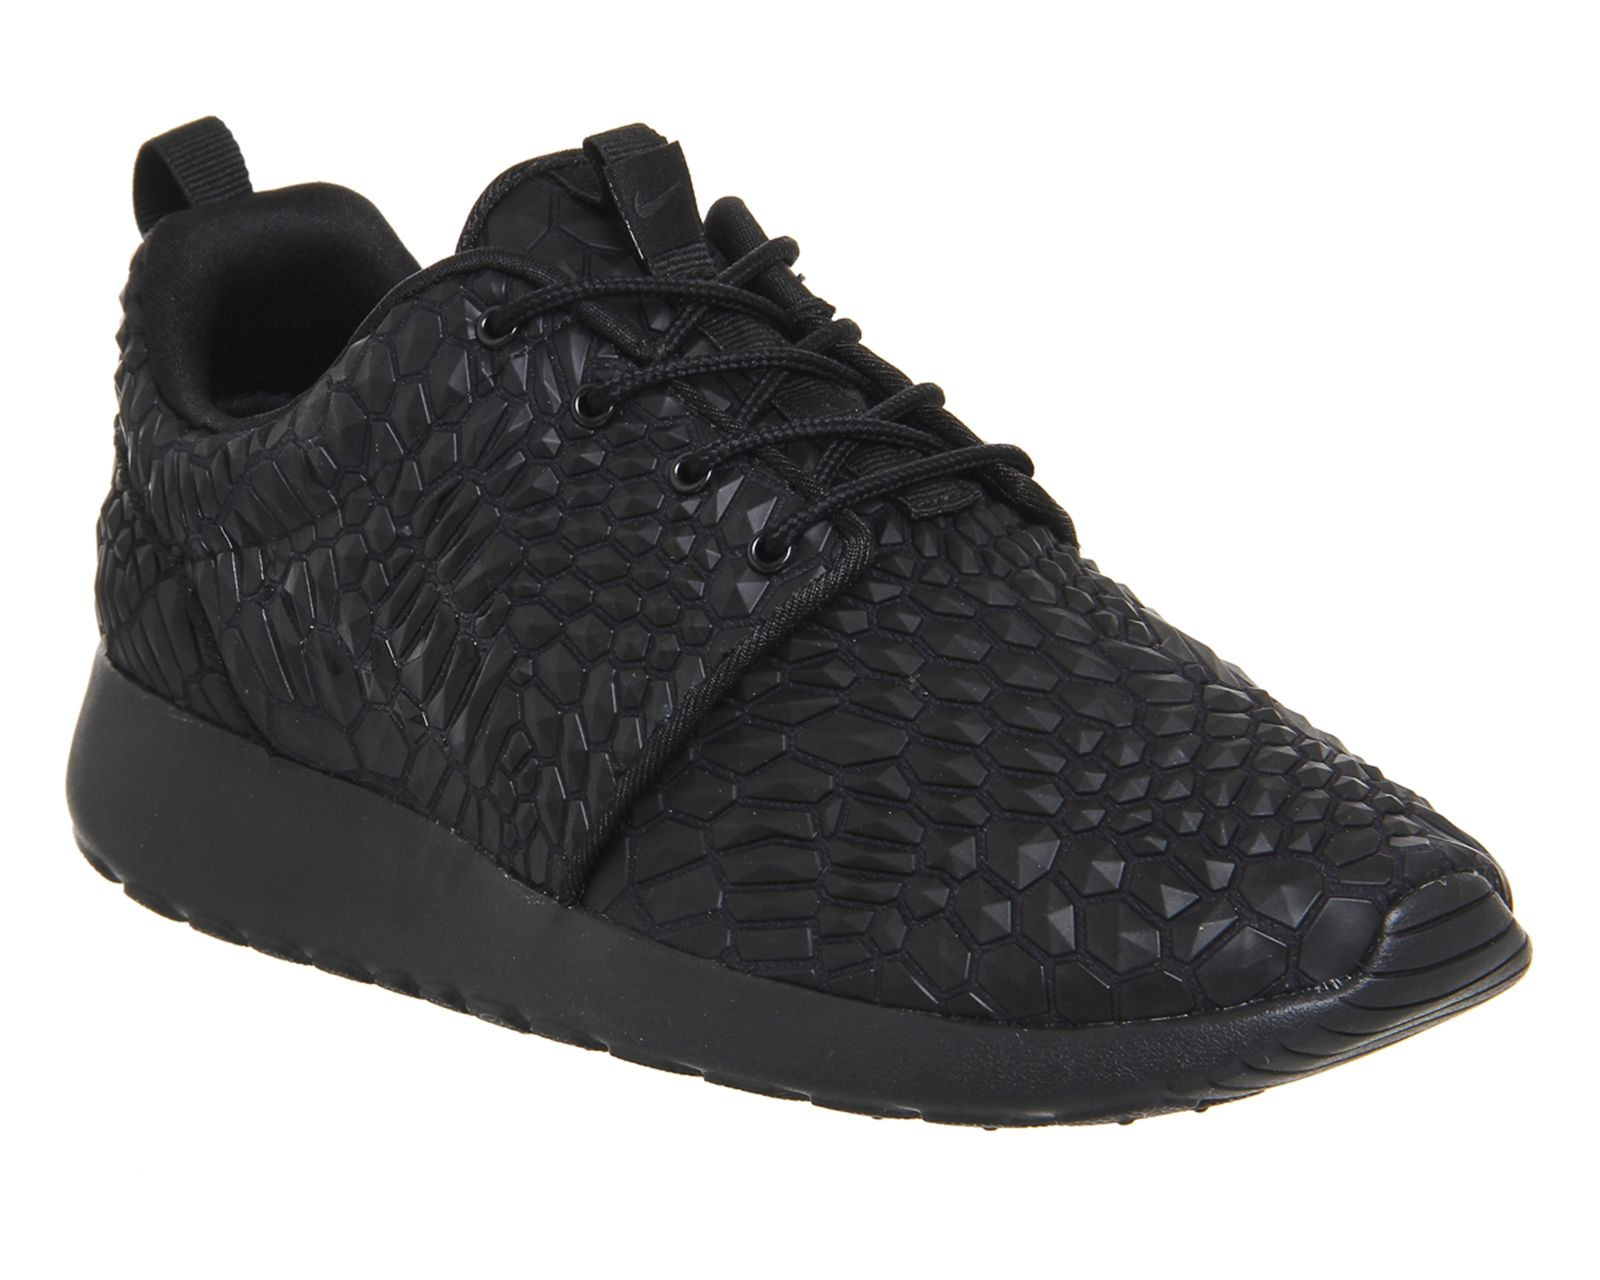 Triple Black Dmb Nike Roshe Run From Office Co Uk